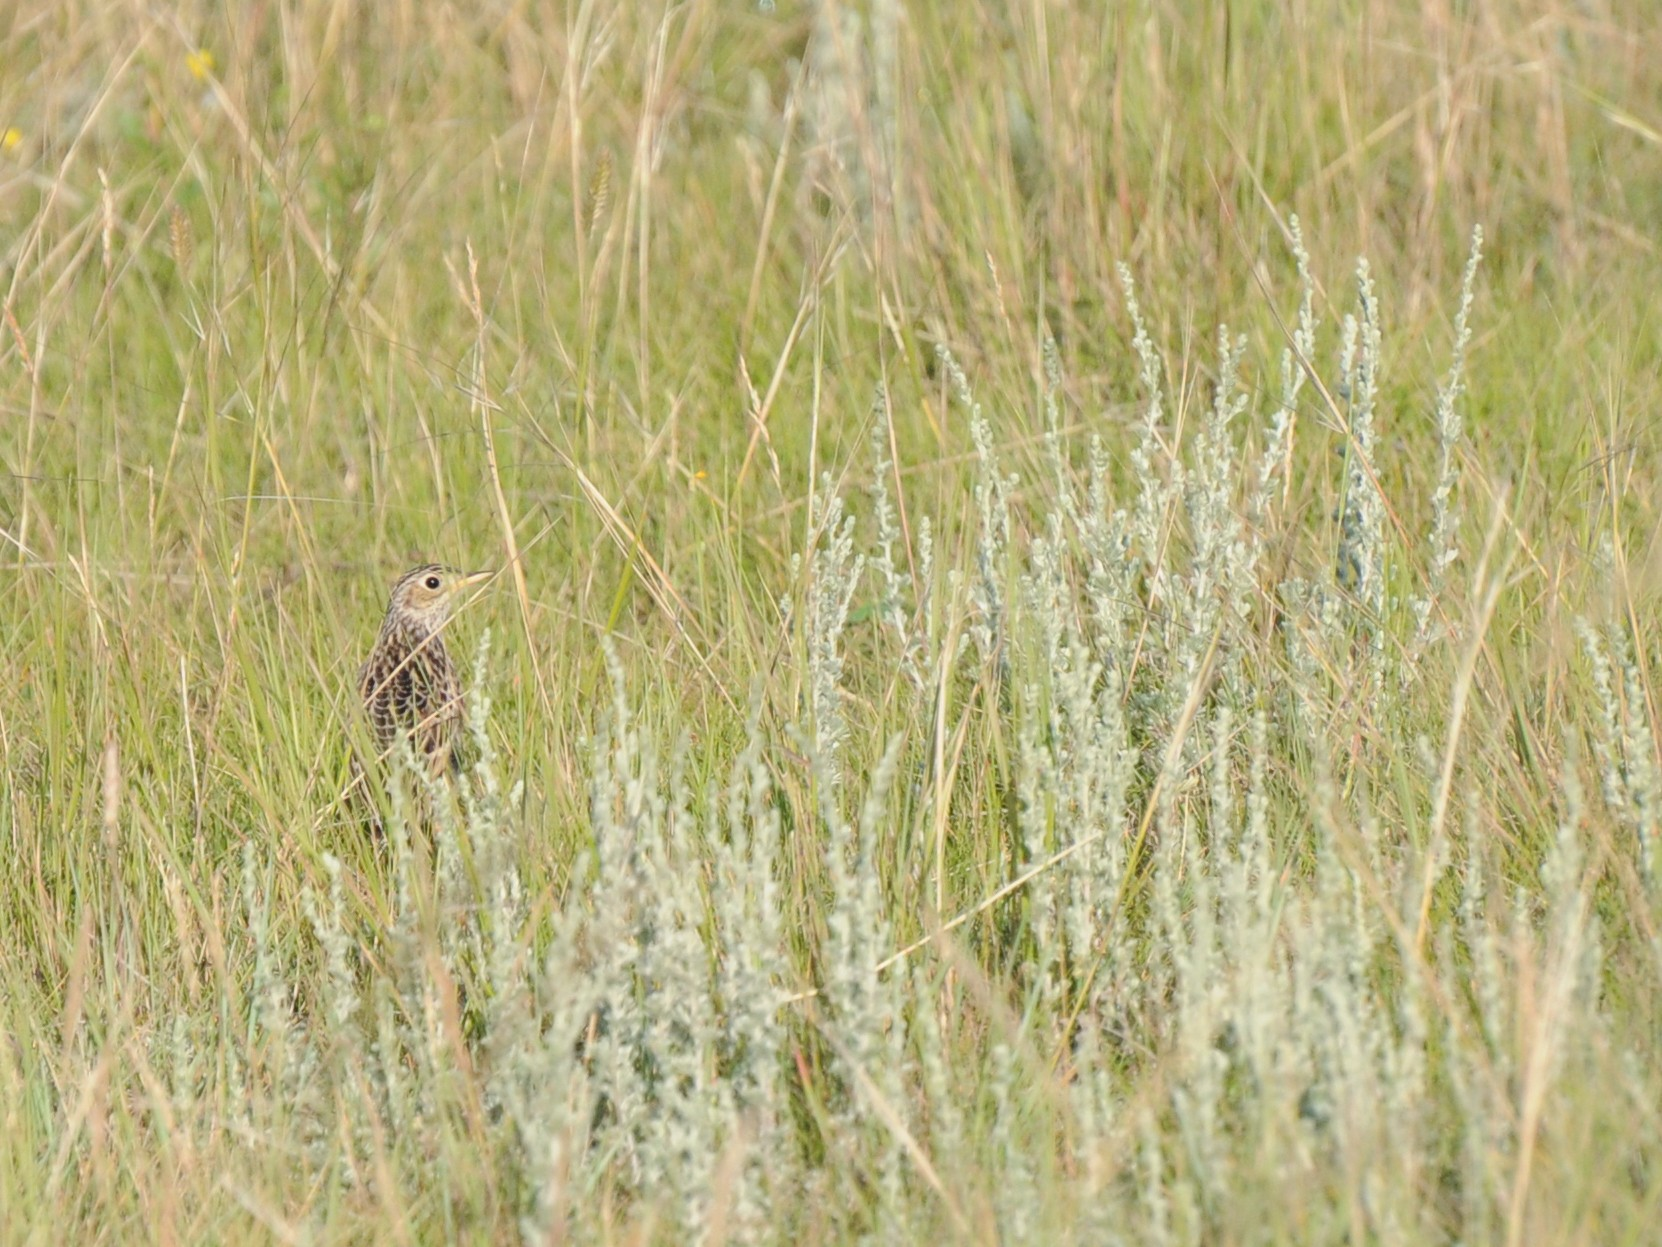 Sprague's Pipit - PC Smith